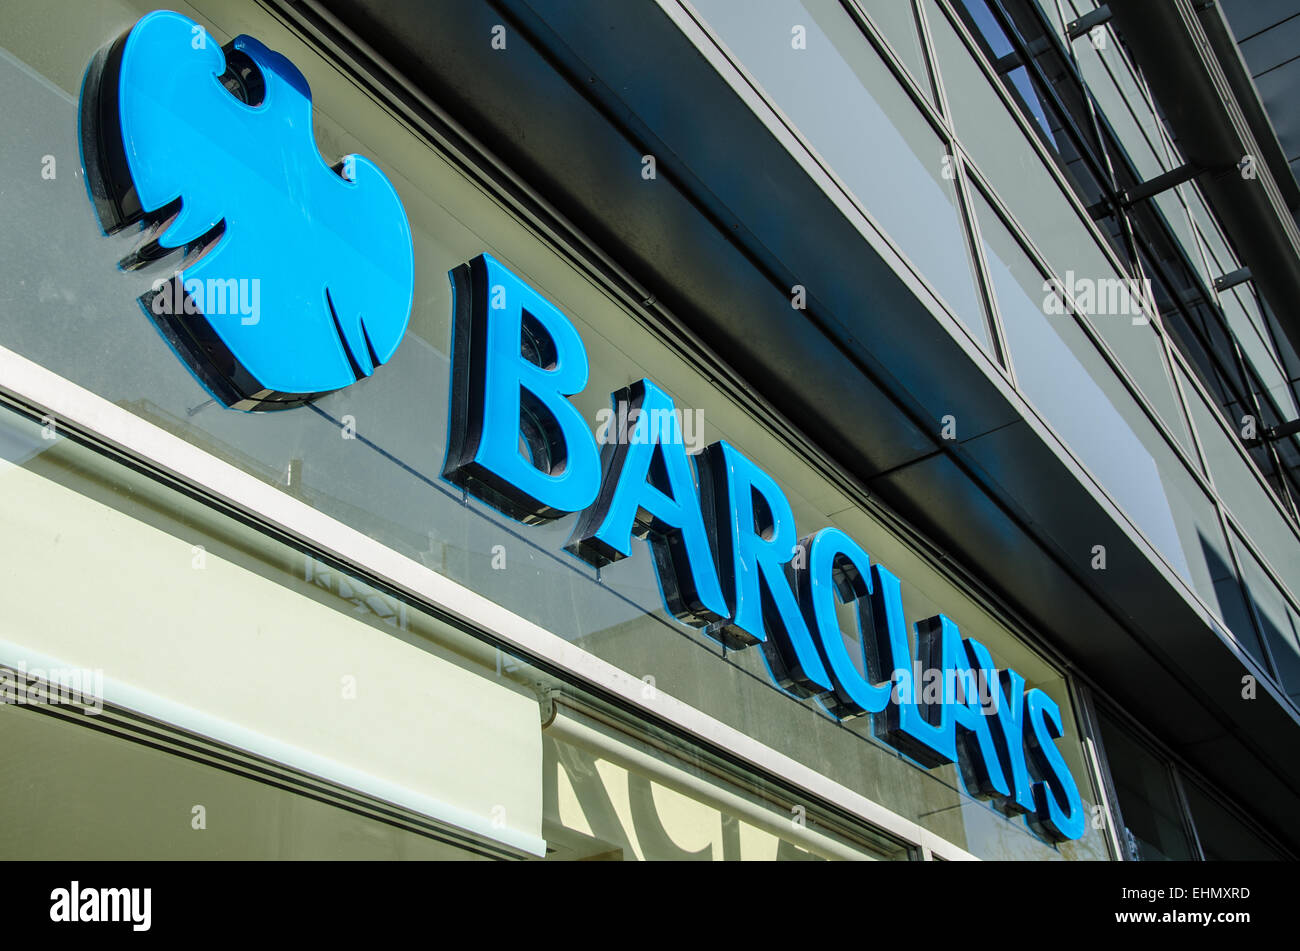 management essays barclays bank plc and deutsche bank plc Your eligible deposits with barclays bank plc are protected up to the fscs compensation limit by the financial services compensation scheme, the uk's deposit guarantee scheme this limit is applied to the total of any deposits you have with the following: barclays, barclays corporate banking, barclays investment bank, barclays private banking.